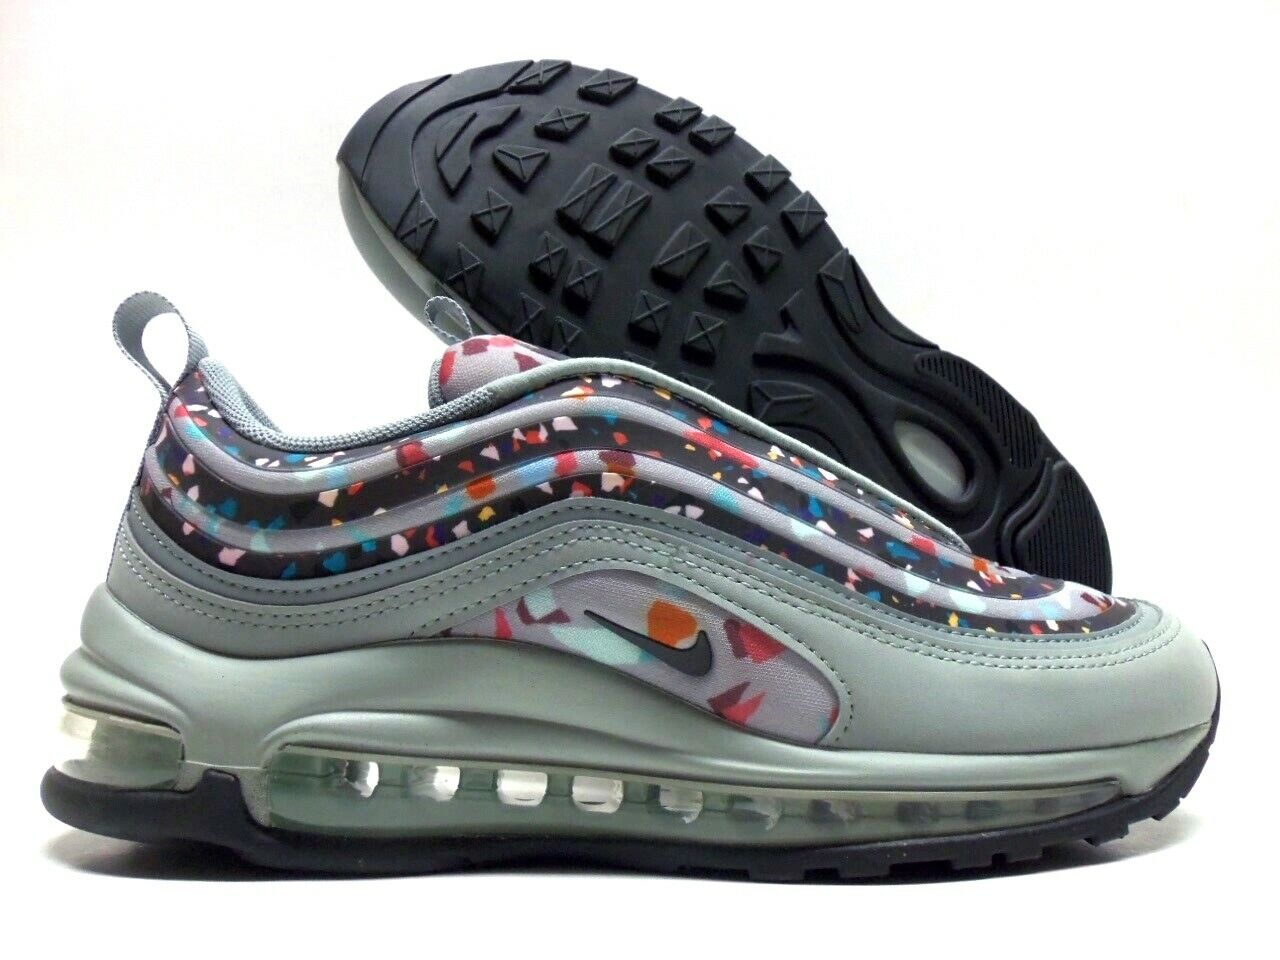 NIKE AIR MAX 97 UL '17 PRM LIGHT PUMICE ANTHRACITE SIZE WOMEN'S 6 [AO2325-001]